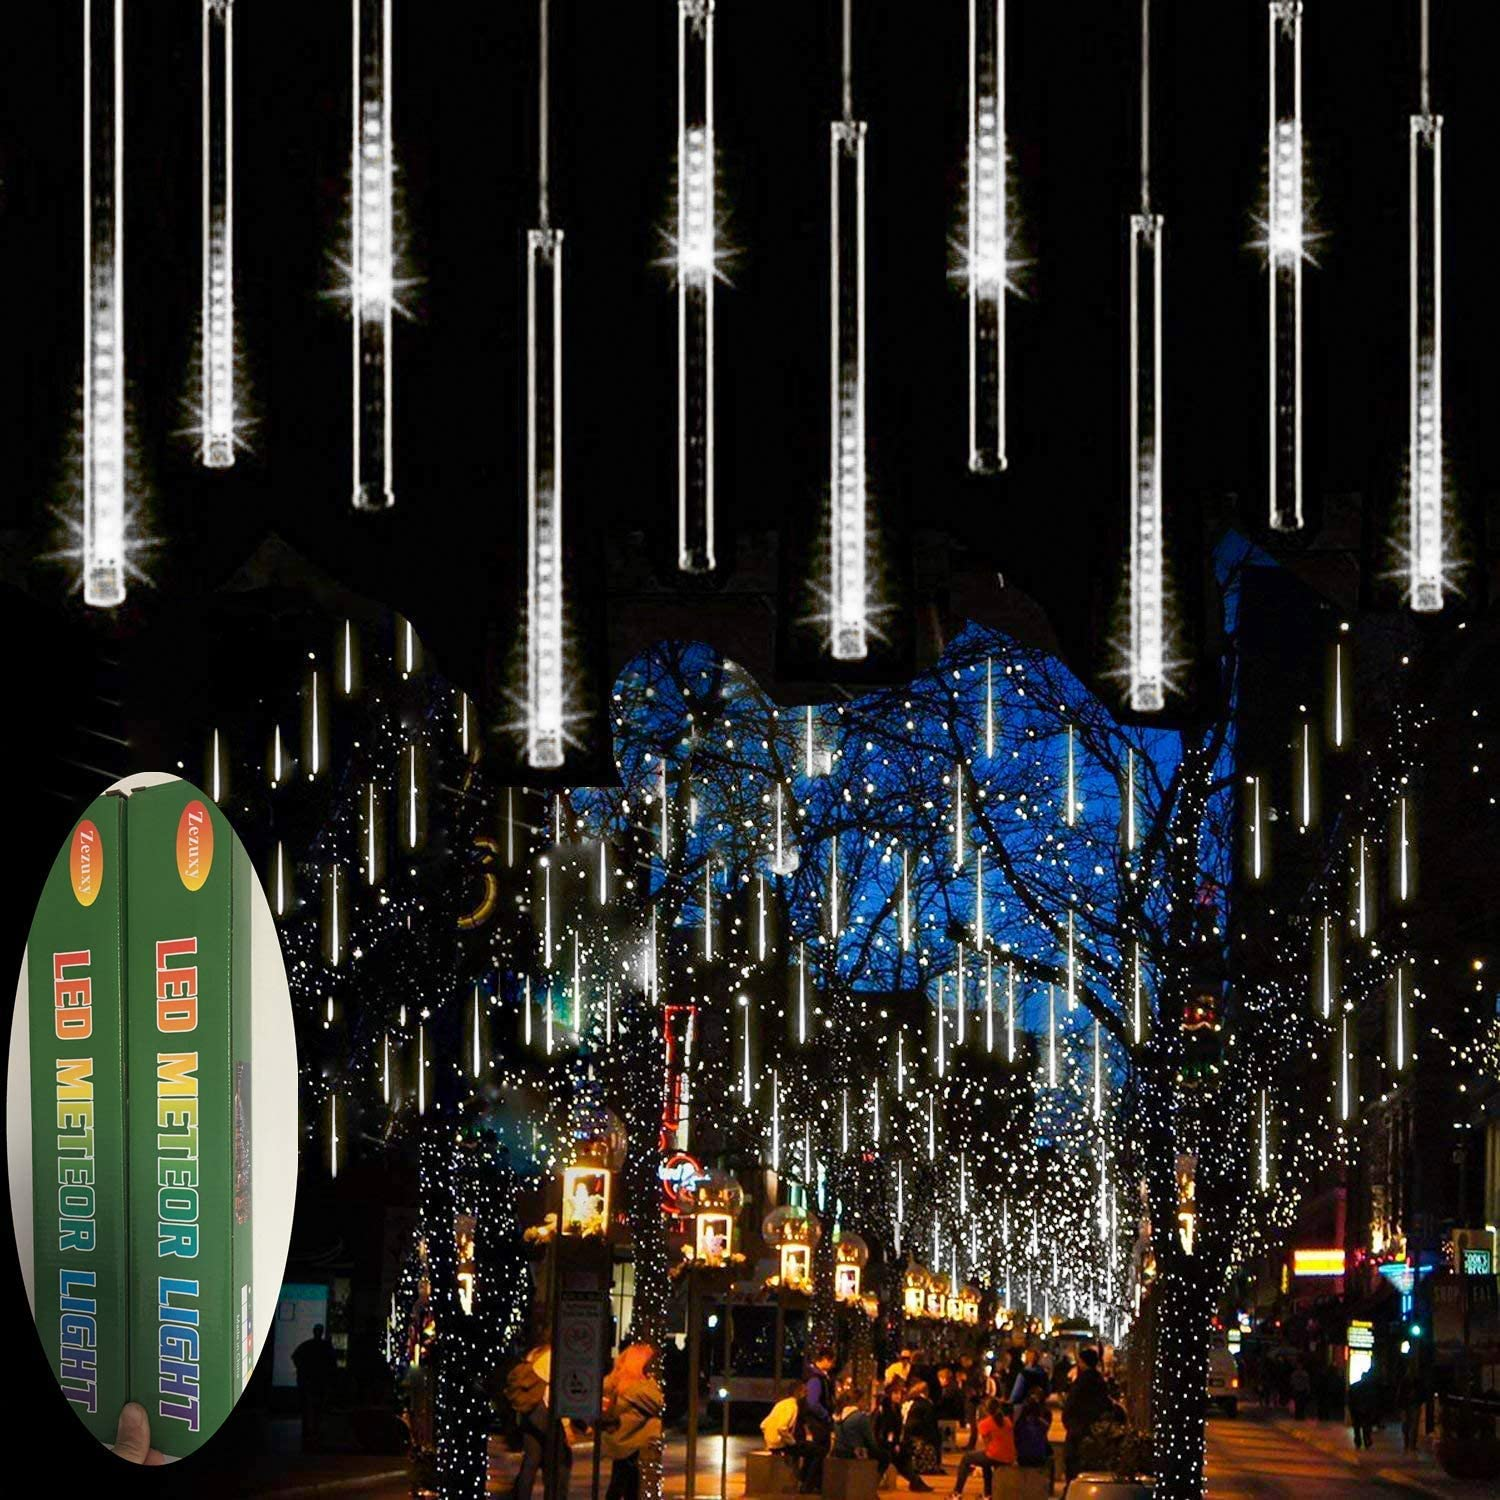 Zezuxy Falling Rain Lights White, UL Listed Meteor Shower Lights with 11.8 inch 8 Tubes 144 LEDs Raindrop Lights, Outdoor Icicle Cascading Christmas String Lights for Trees Thanksgiving Garden Party